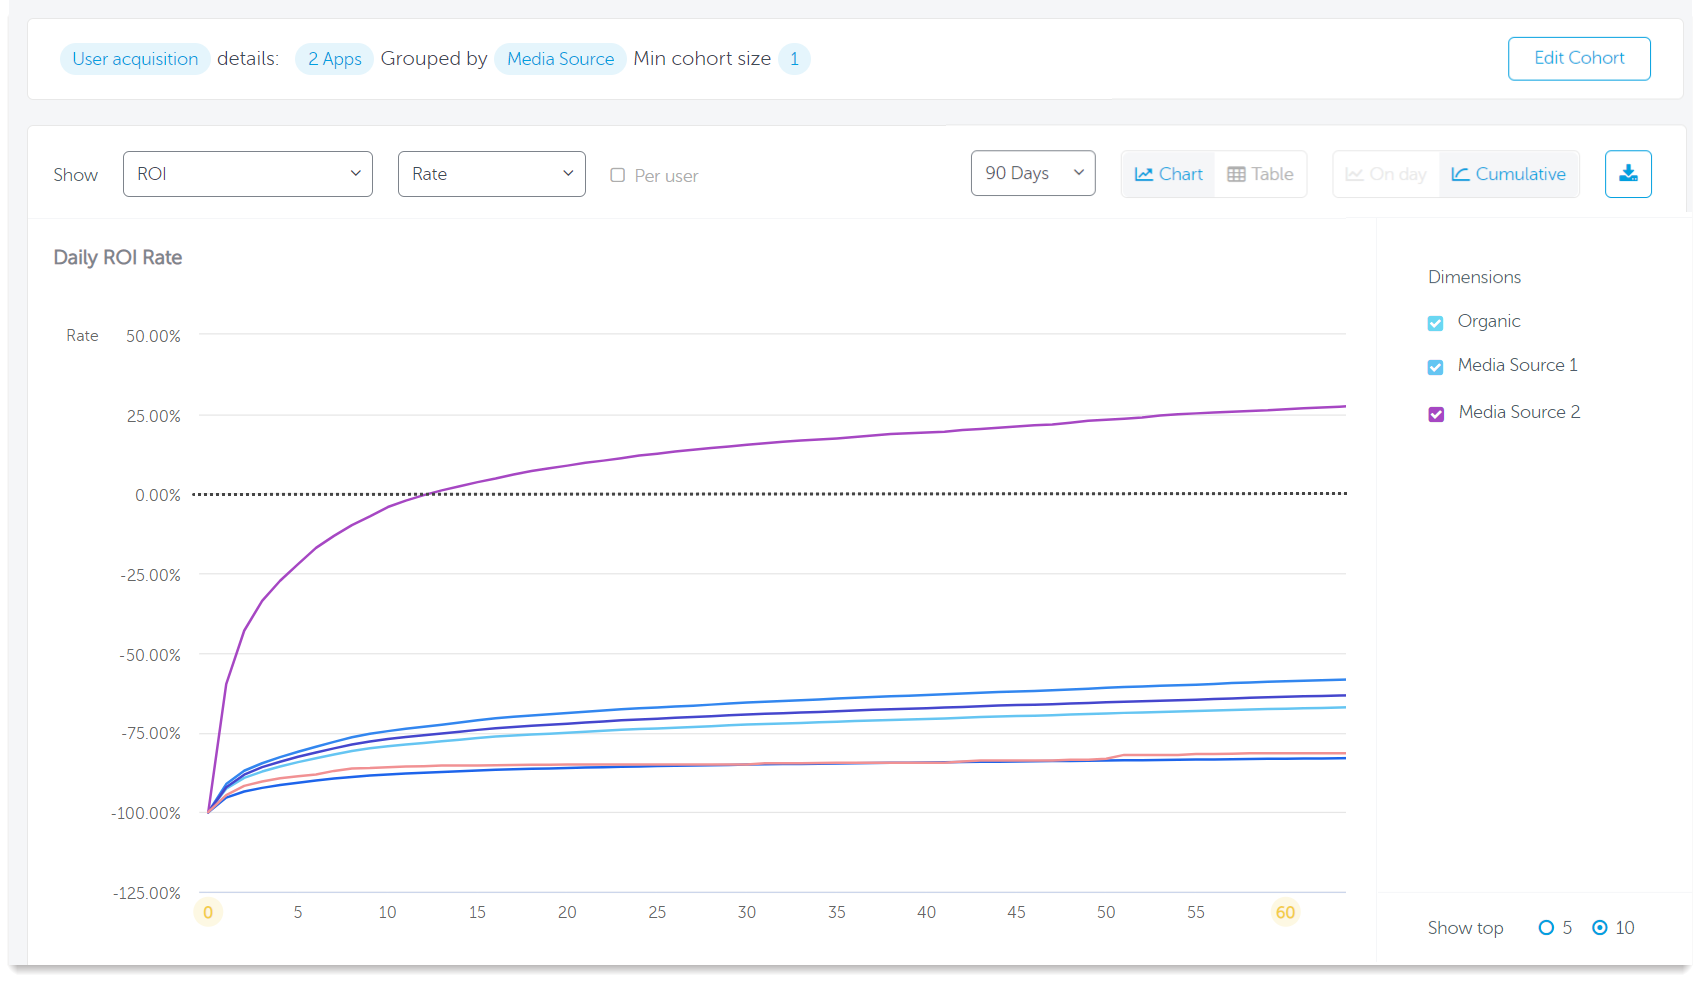 AppsFlyer Cohort Report for ad monetization in gaming app - chart view